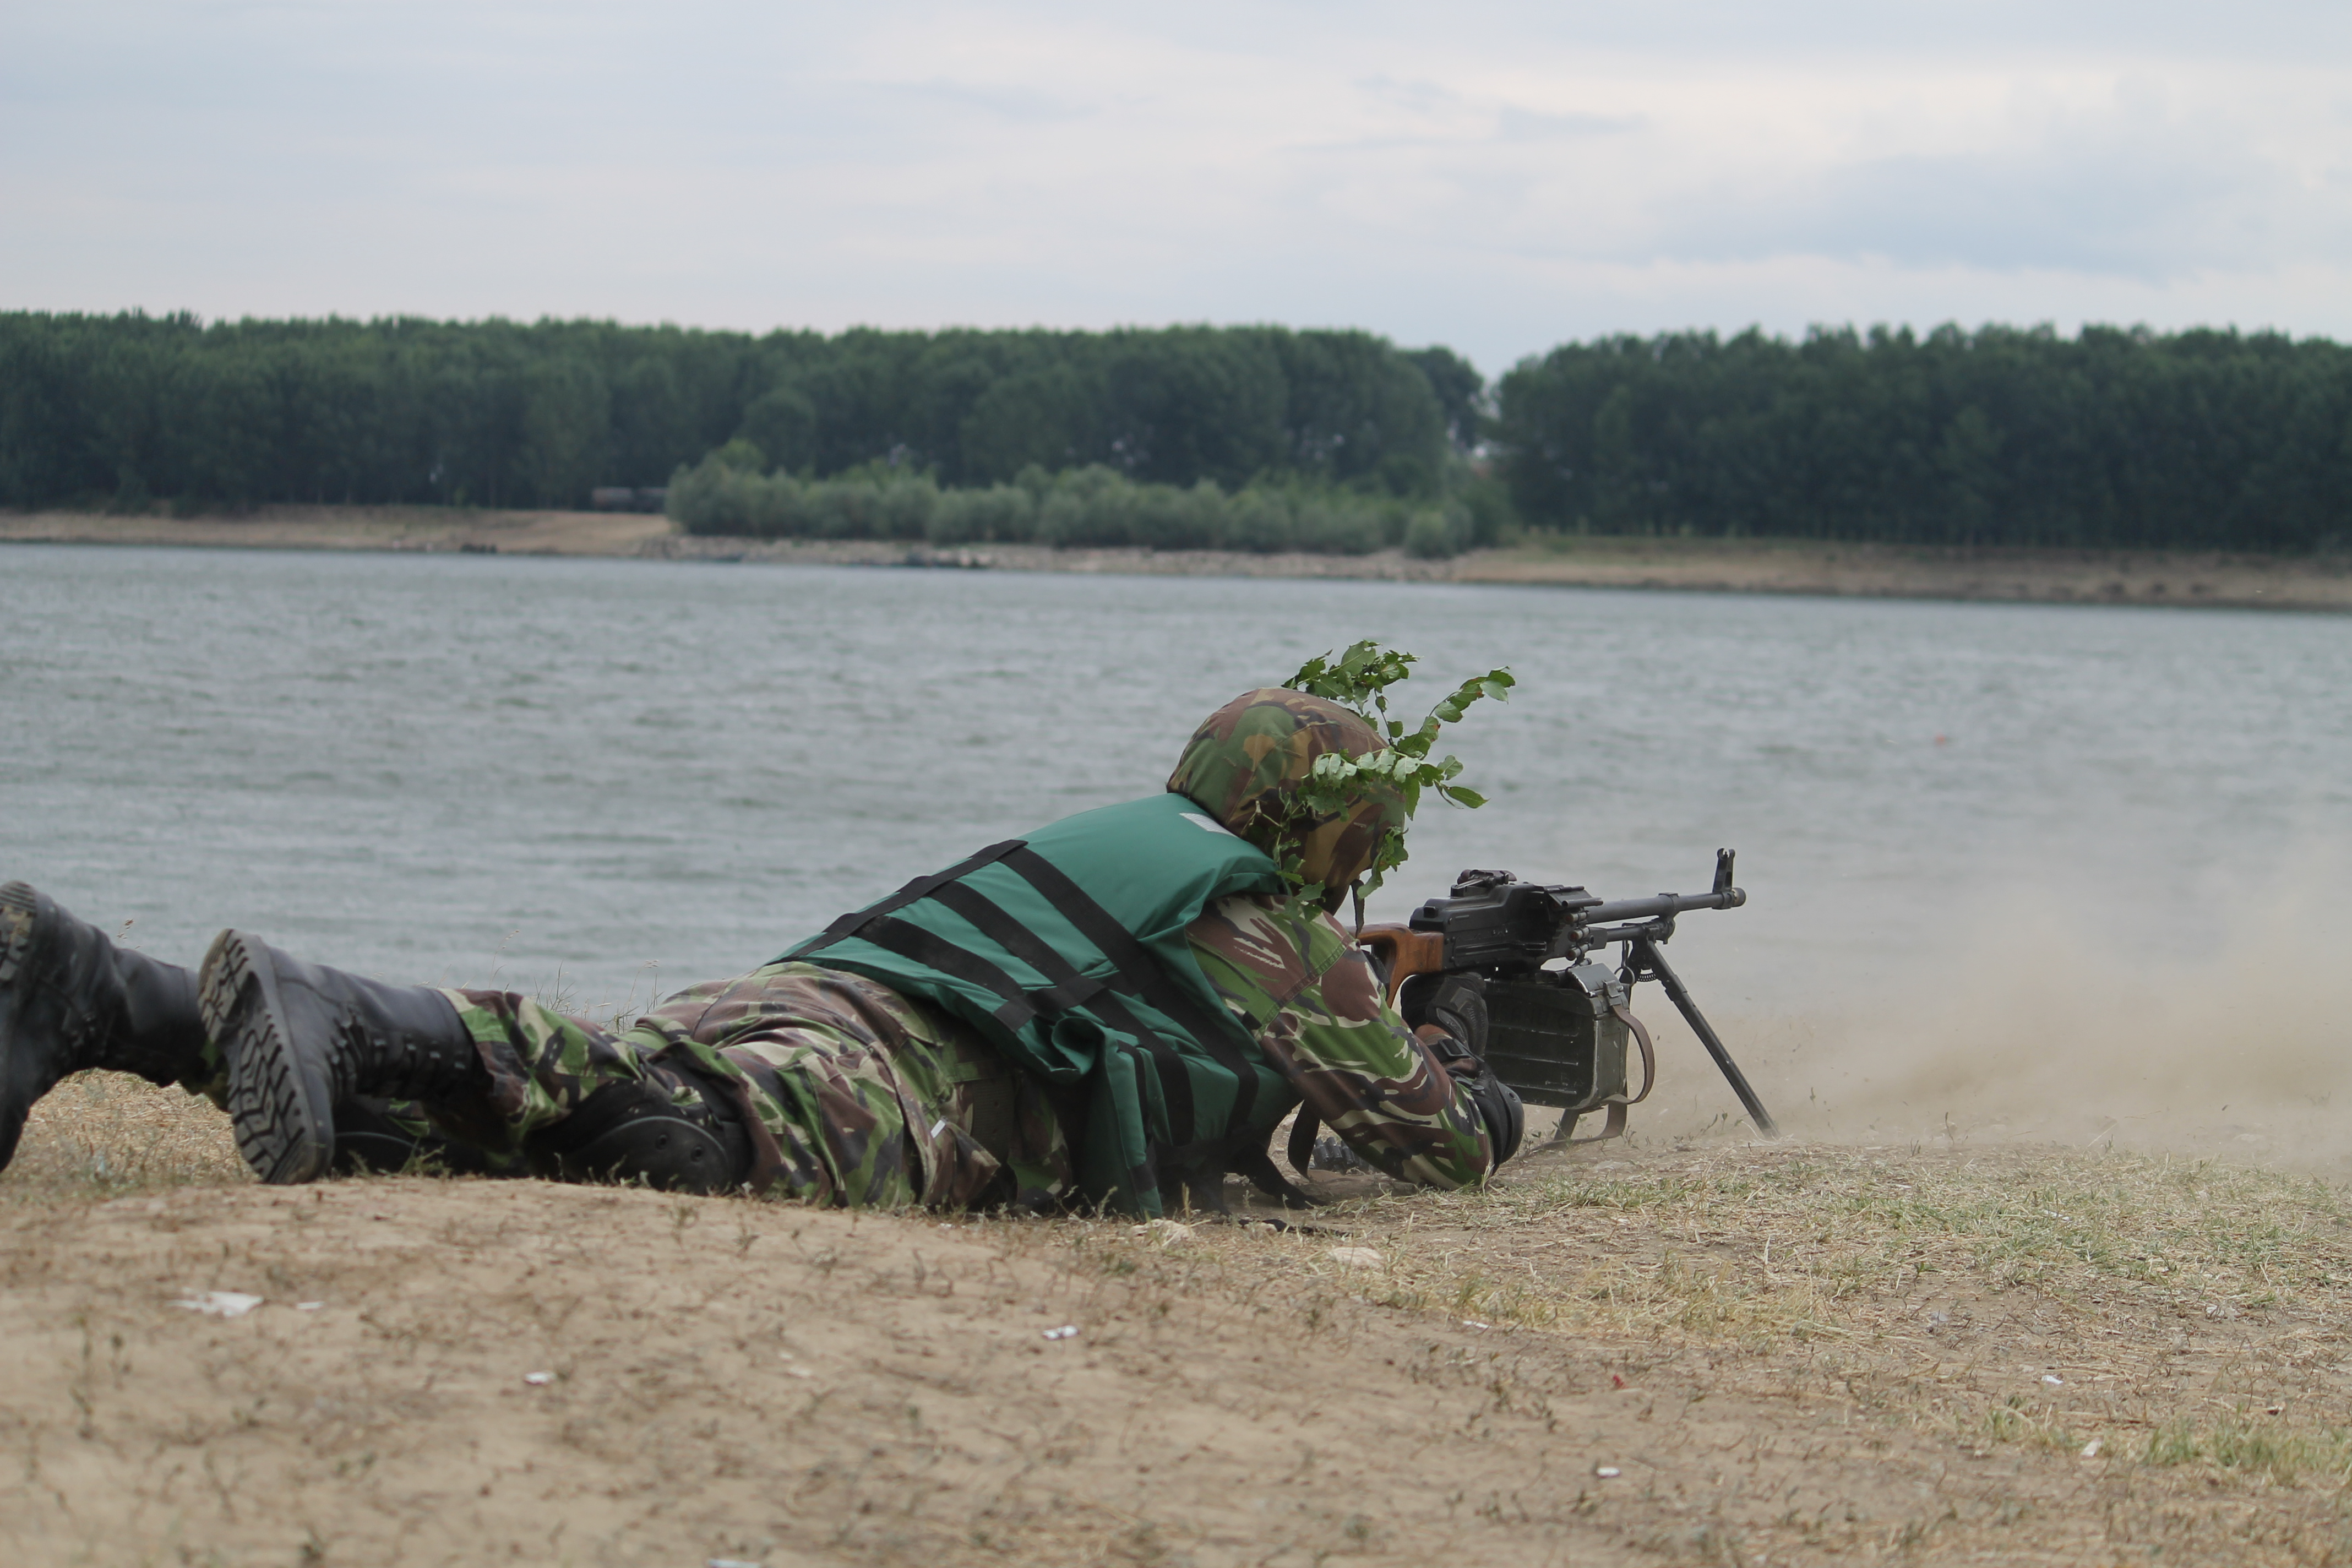 A soldier fires, providing cover for troops attempting to cross the Danube with a high-speed boat. (Jen Judson/Staff)